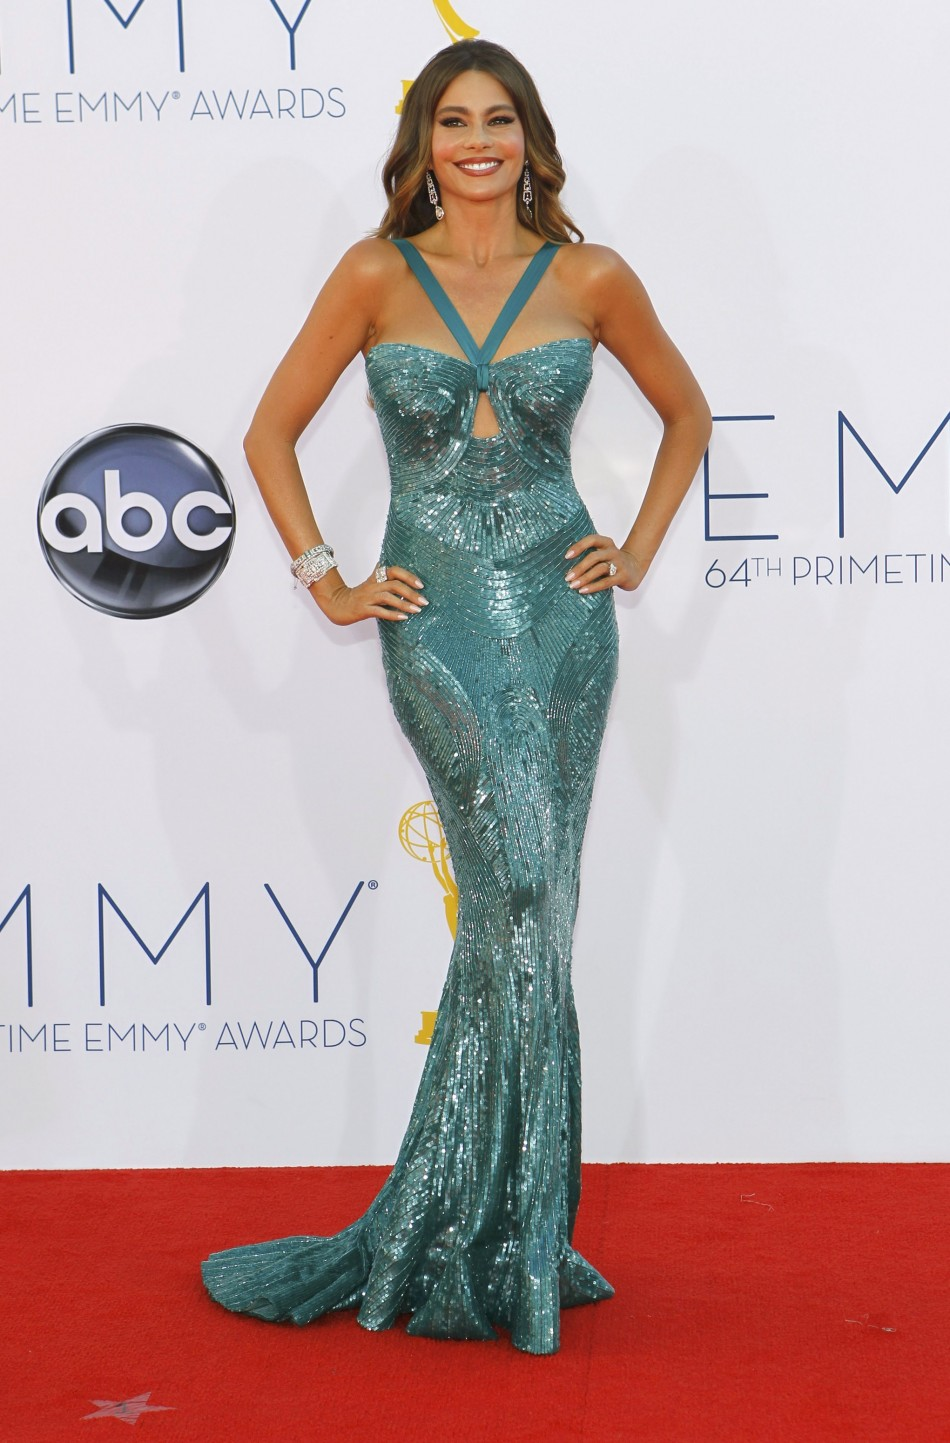 Actress Sofia Vergara arrives at the 64th Primetime Emmy Awards in Los Angeles